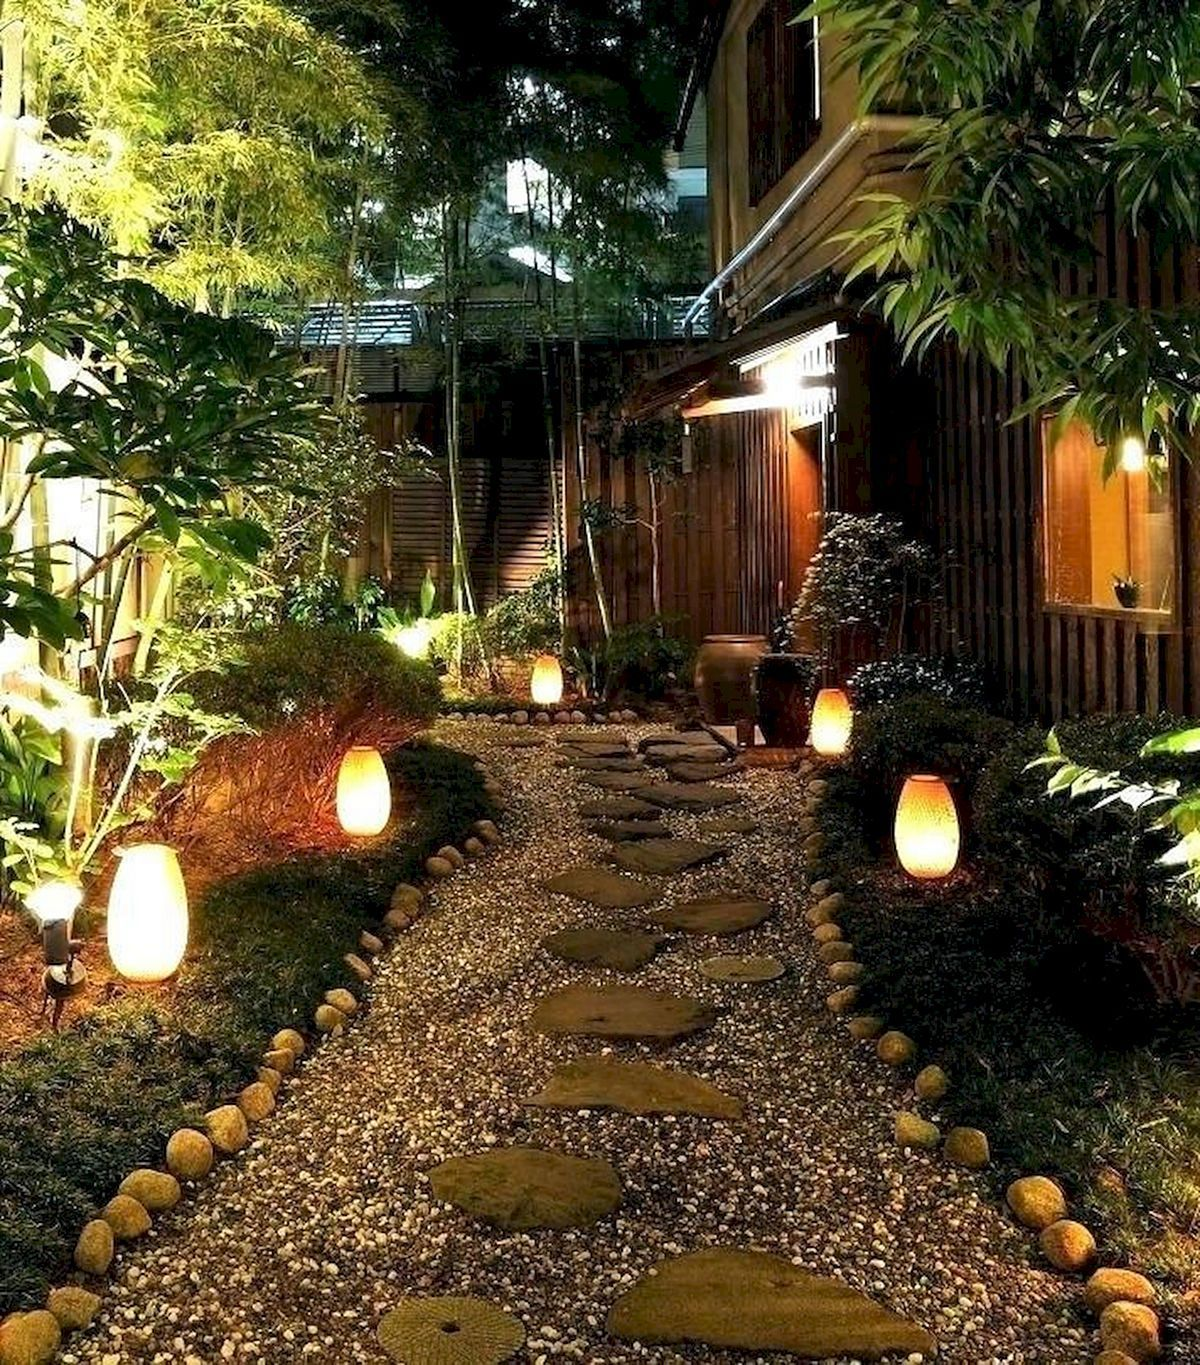 7 Beautiful Garden Lighting Ideas To Improve The Style Of Your Garden Outdoor Landscape Lighting Backyard Lighting Diy Backyard Lighting